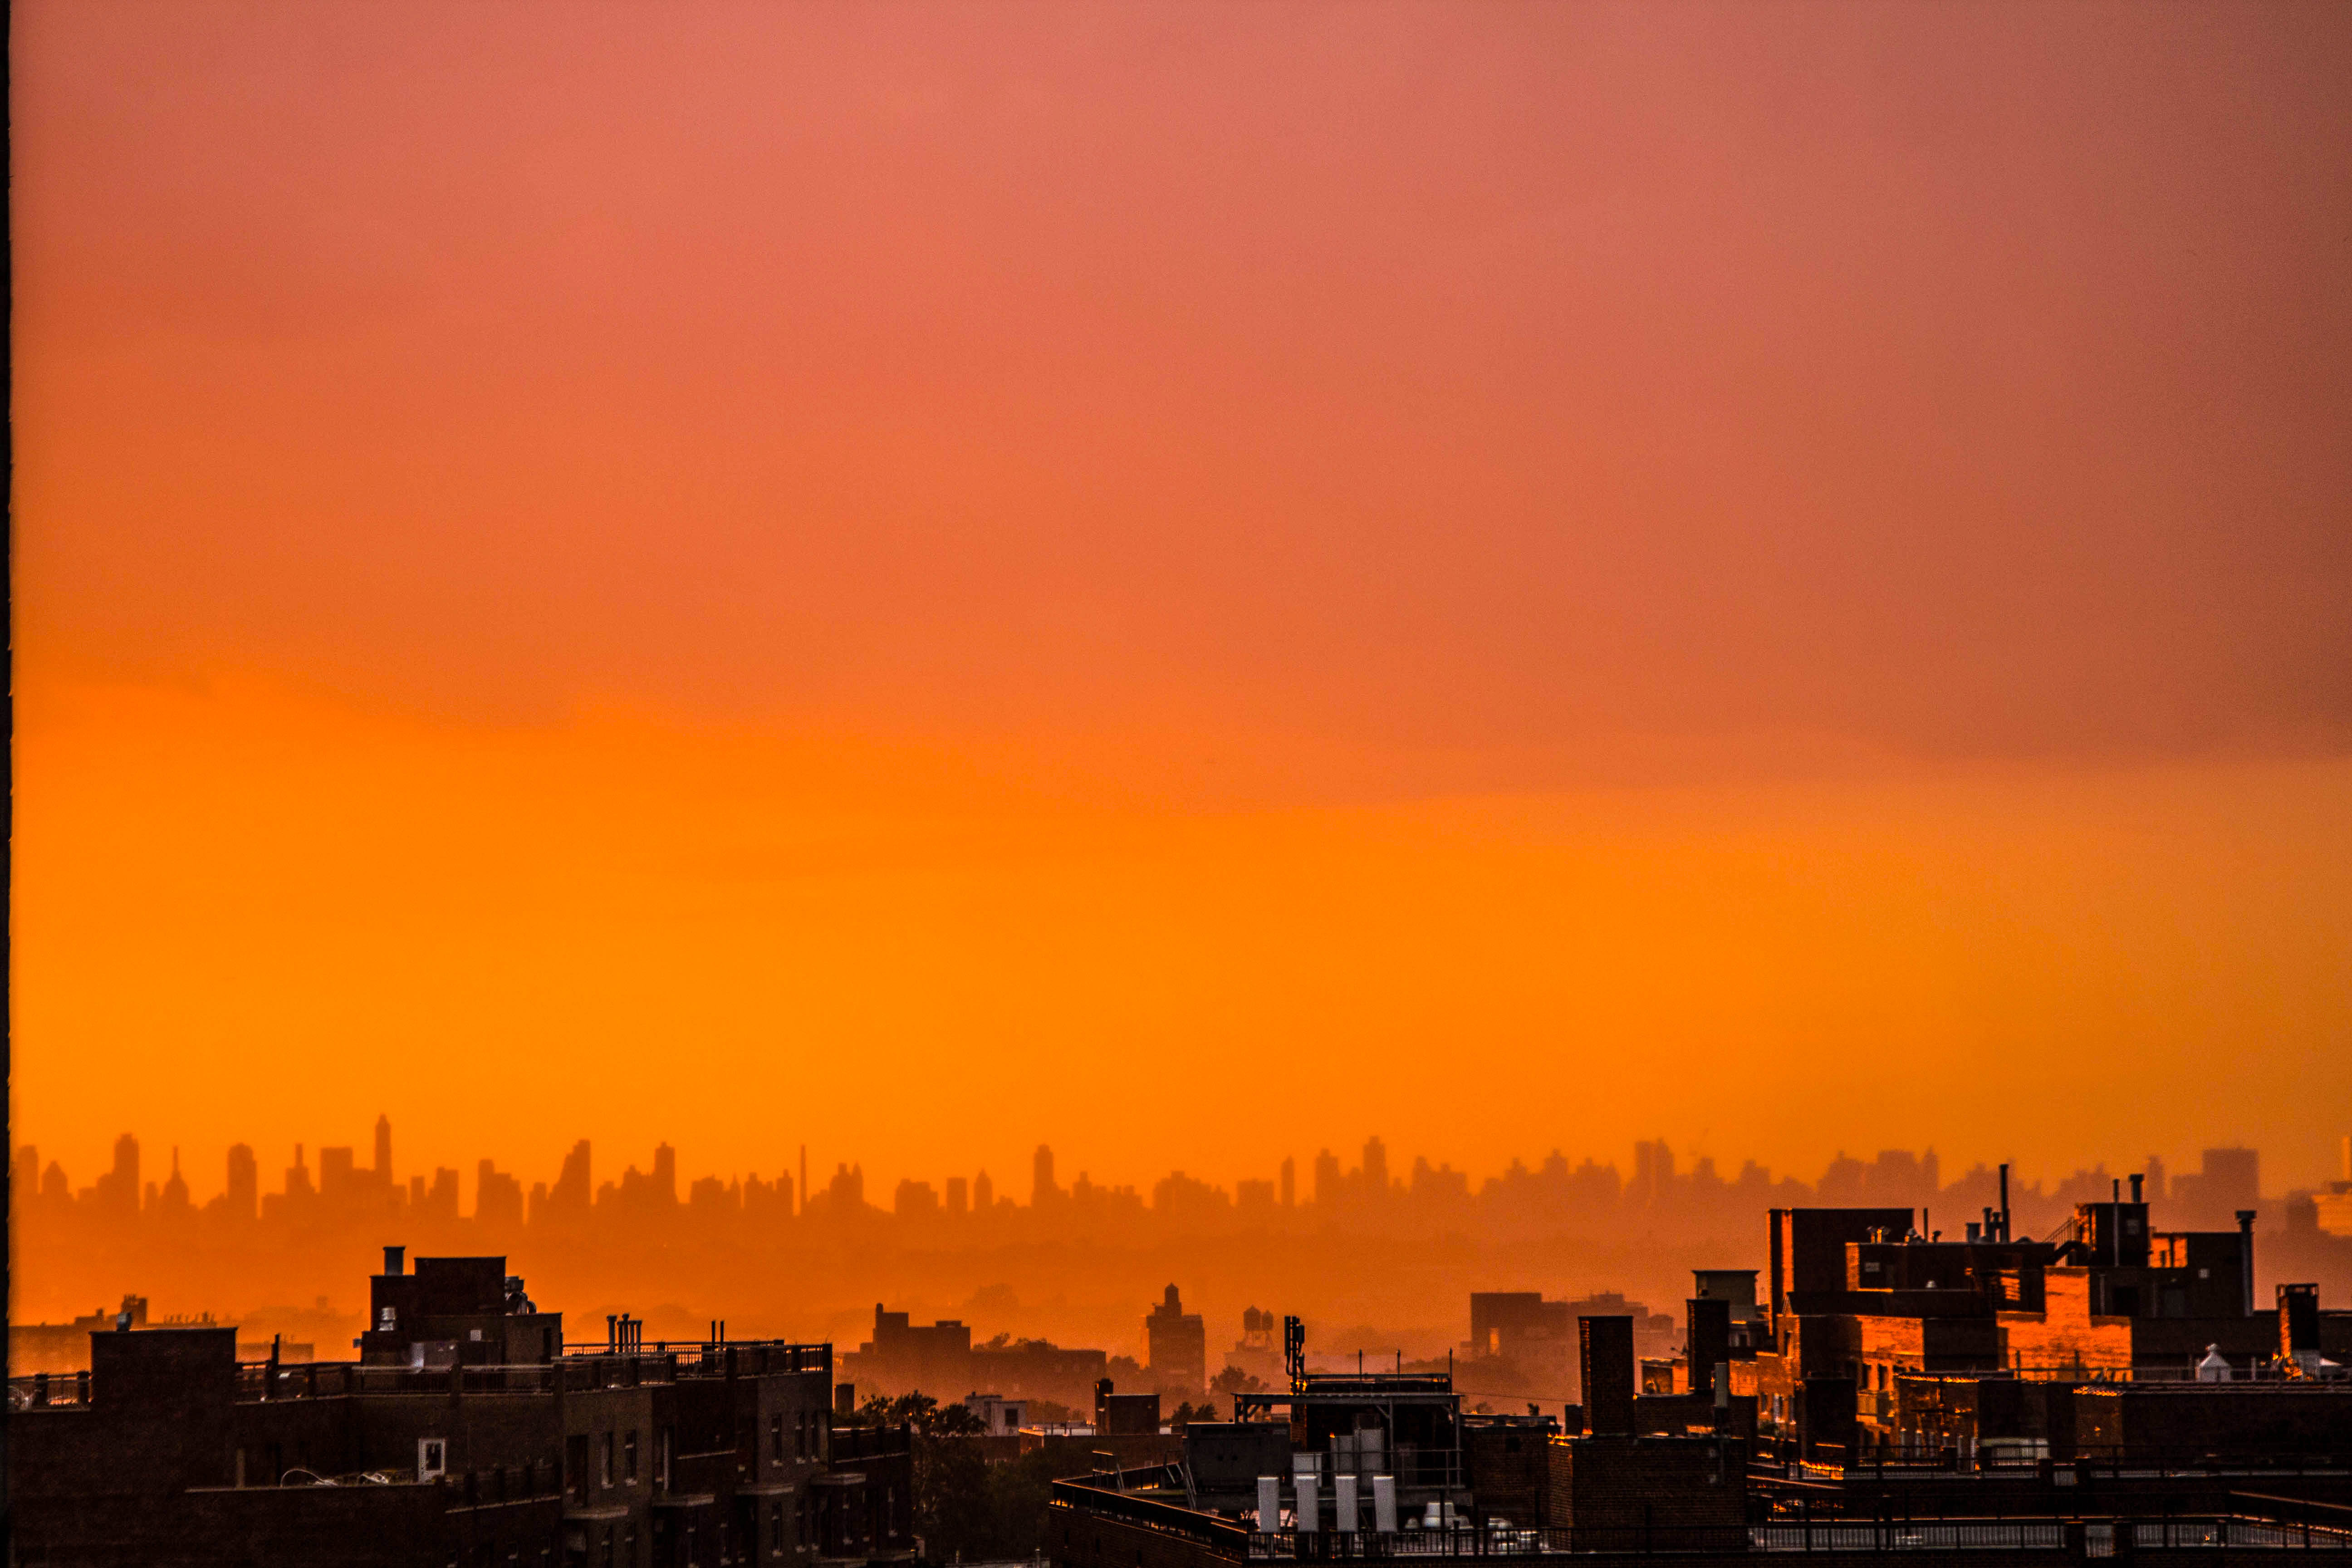 Sky Hd Wallpaper Silhouette Photo Of City Building During Sunset 183 Free